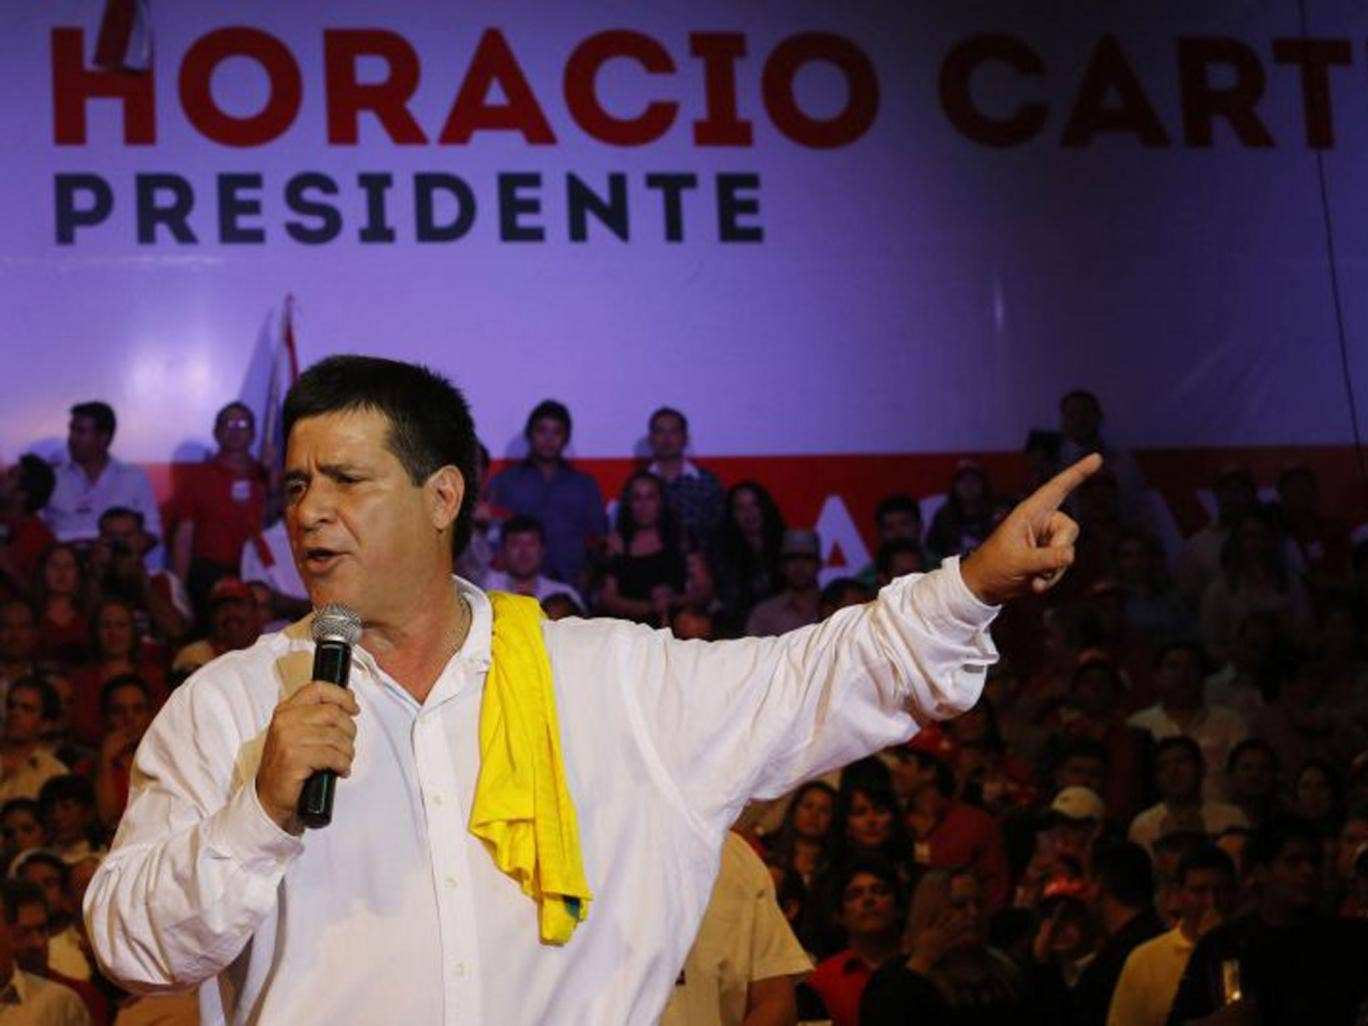 The Paraguayan presidential candidate and businessman,  Horacio Cartes, currently leads in the polls